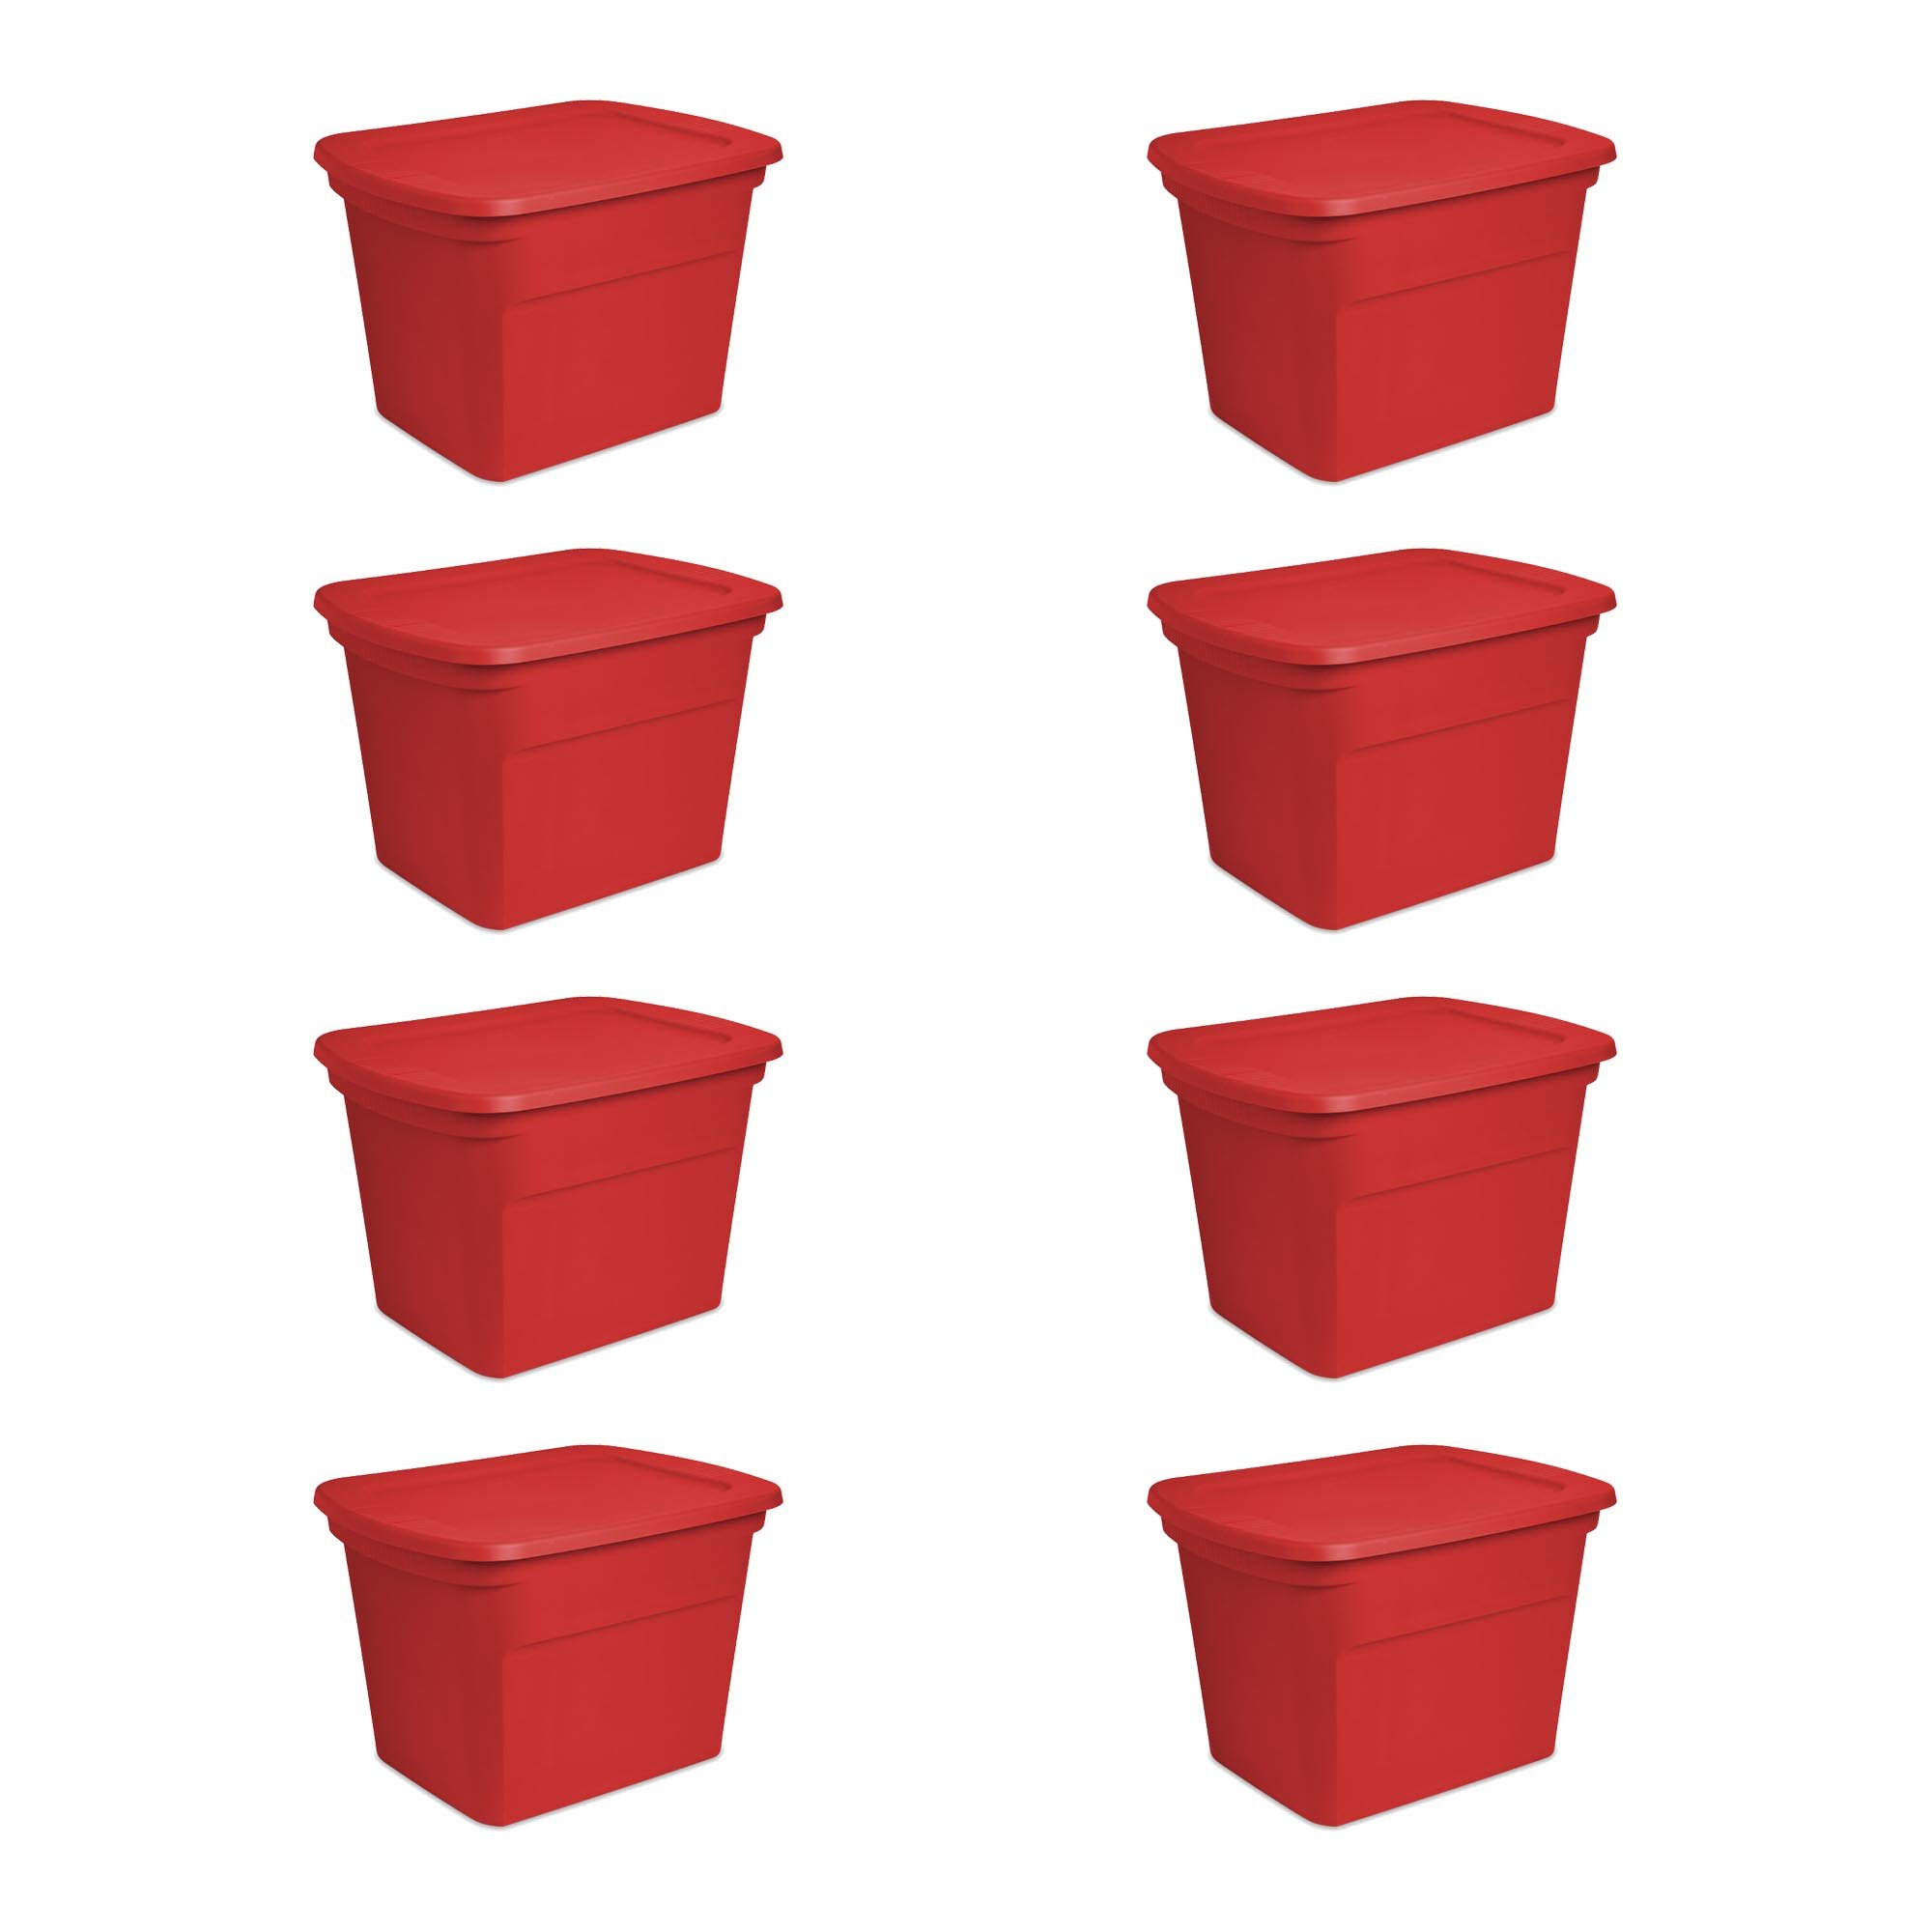 Sterilite 18 Gallon Durable Stacking Seasonal Storage Tote, Red (8 Pack)